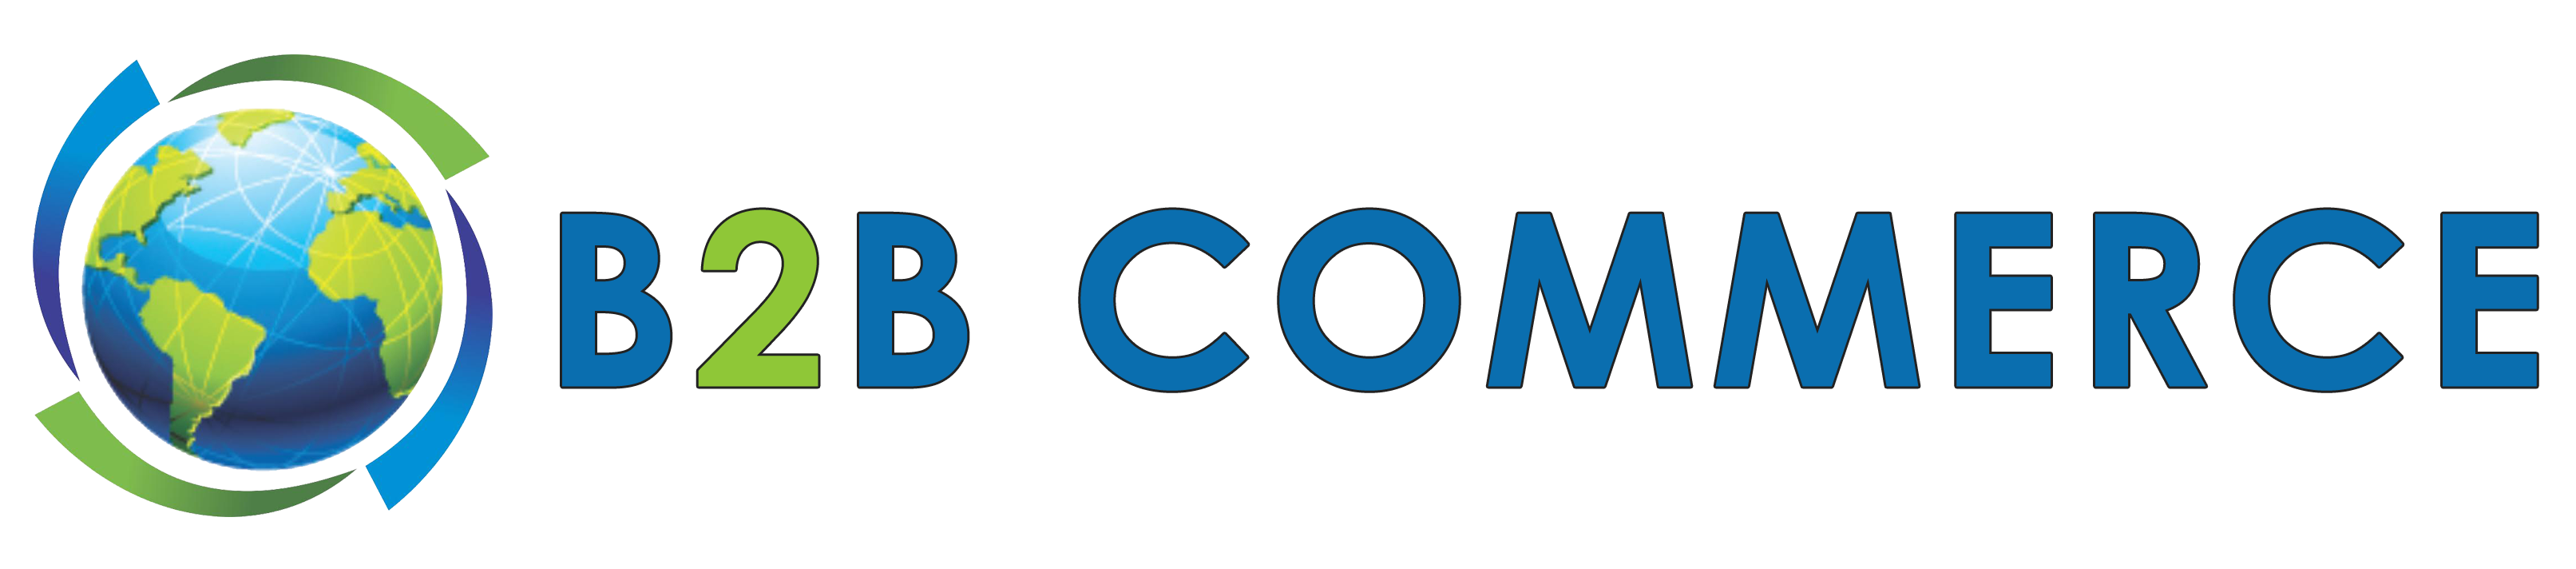 B2B Commerce Pvt. Ltd. - Big Data company logo